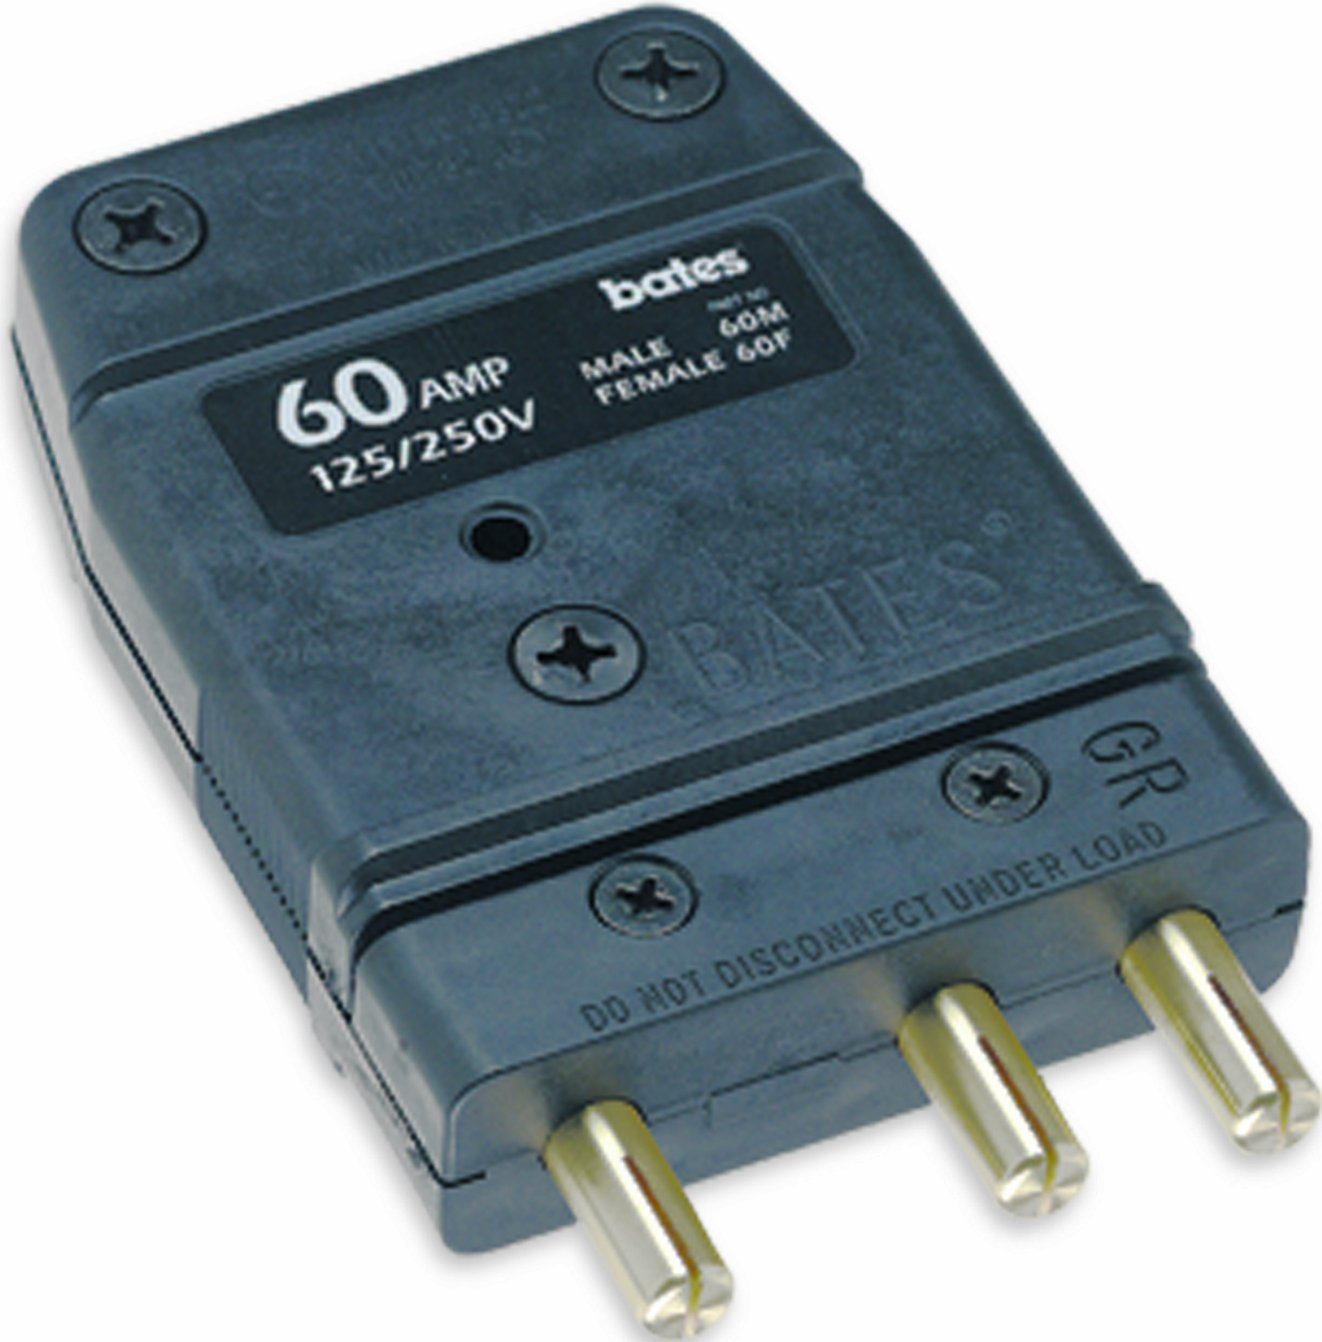 Male Inline Marinco Power Products Marinco 60M Bates Stage Pin 60 Amp,125 Volt